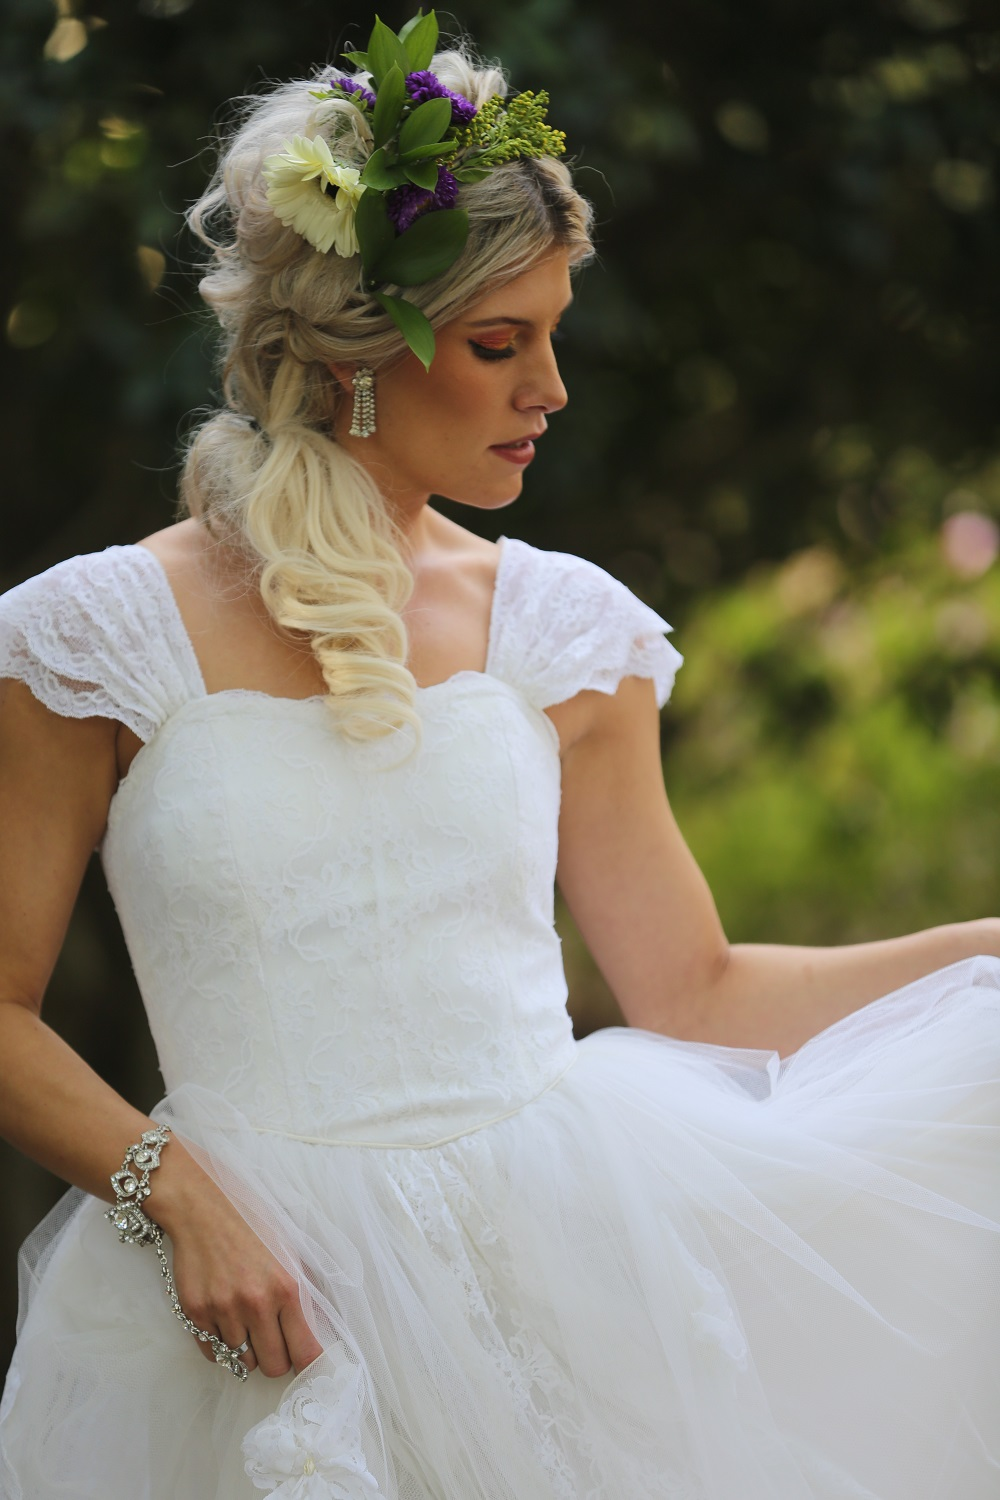 Bridal portrait by Bryce Lafoon Photography